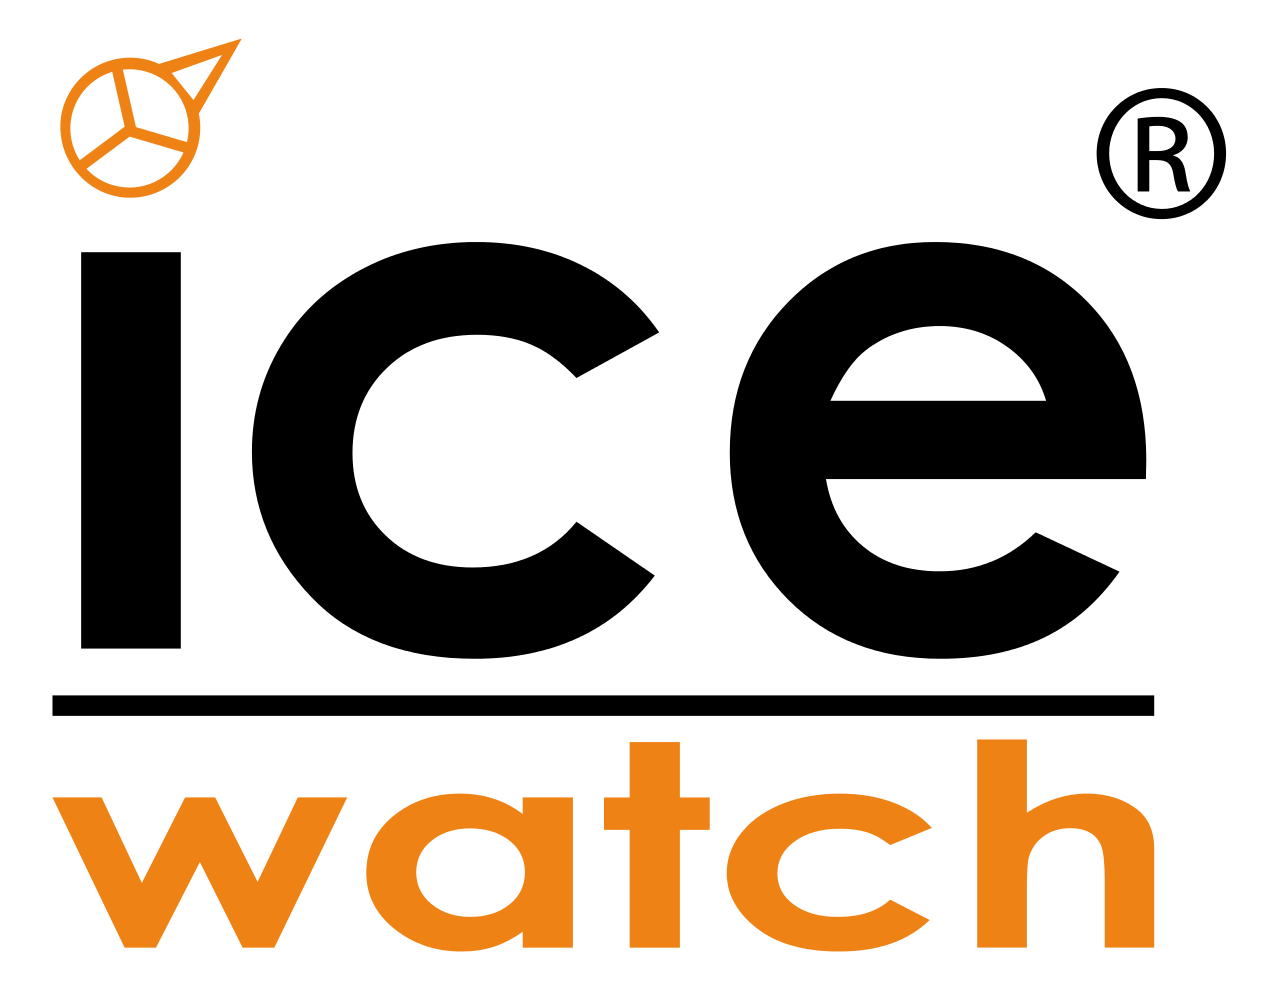 Order your original replacement Ice Watch watch straps at Watchstraps-batteries.com